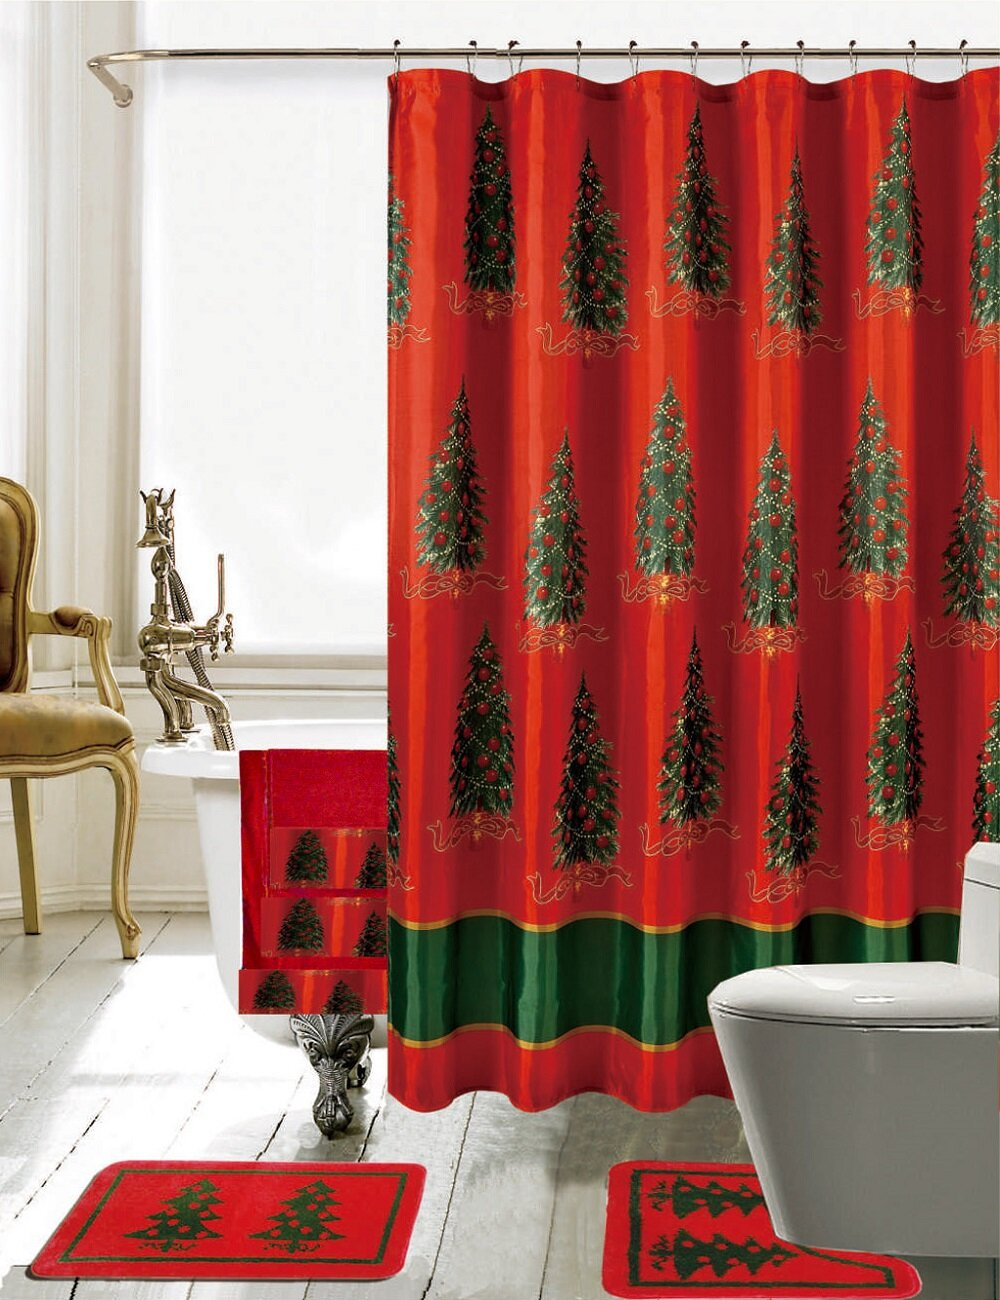 daniels bath christmas bathroom decor 18 piece shower curtain set ebay. Black Bedroom Furniture Sets. Home Design Ideas